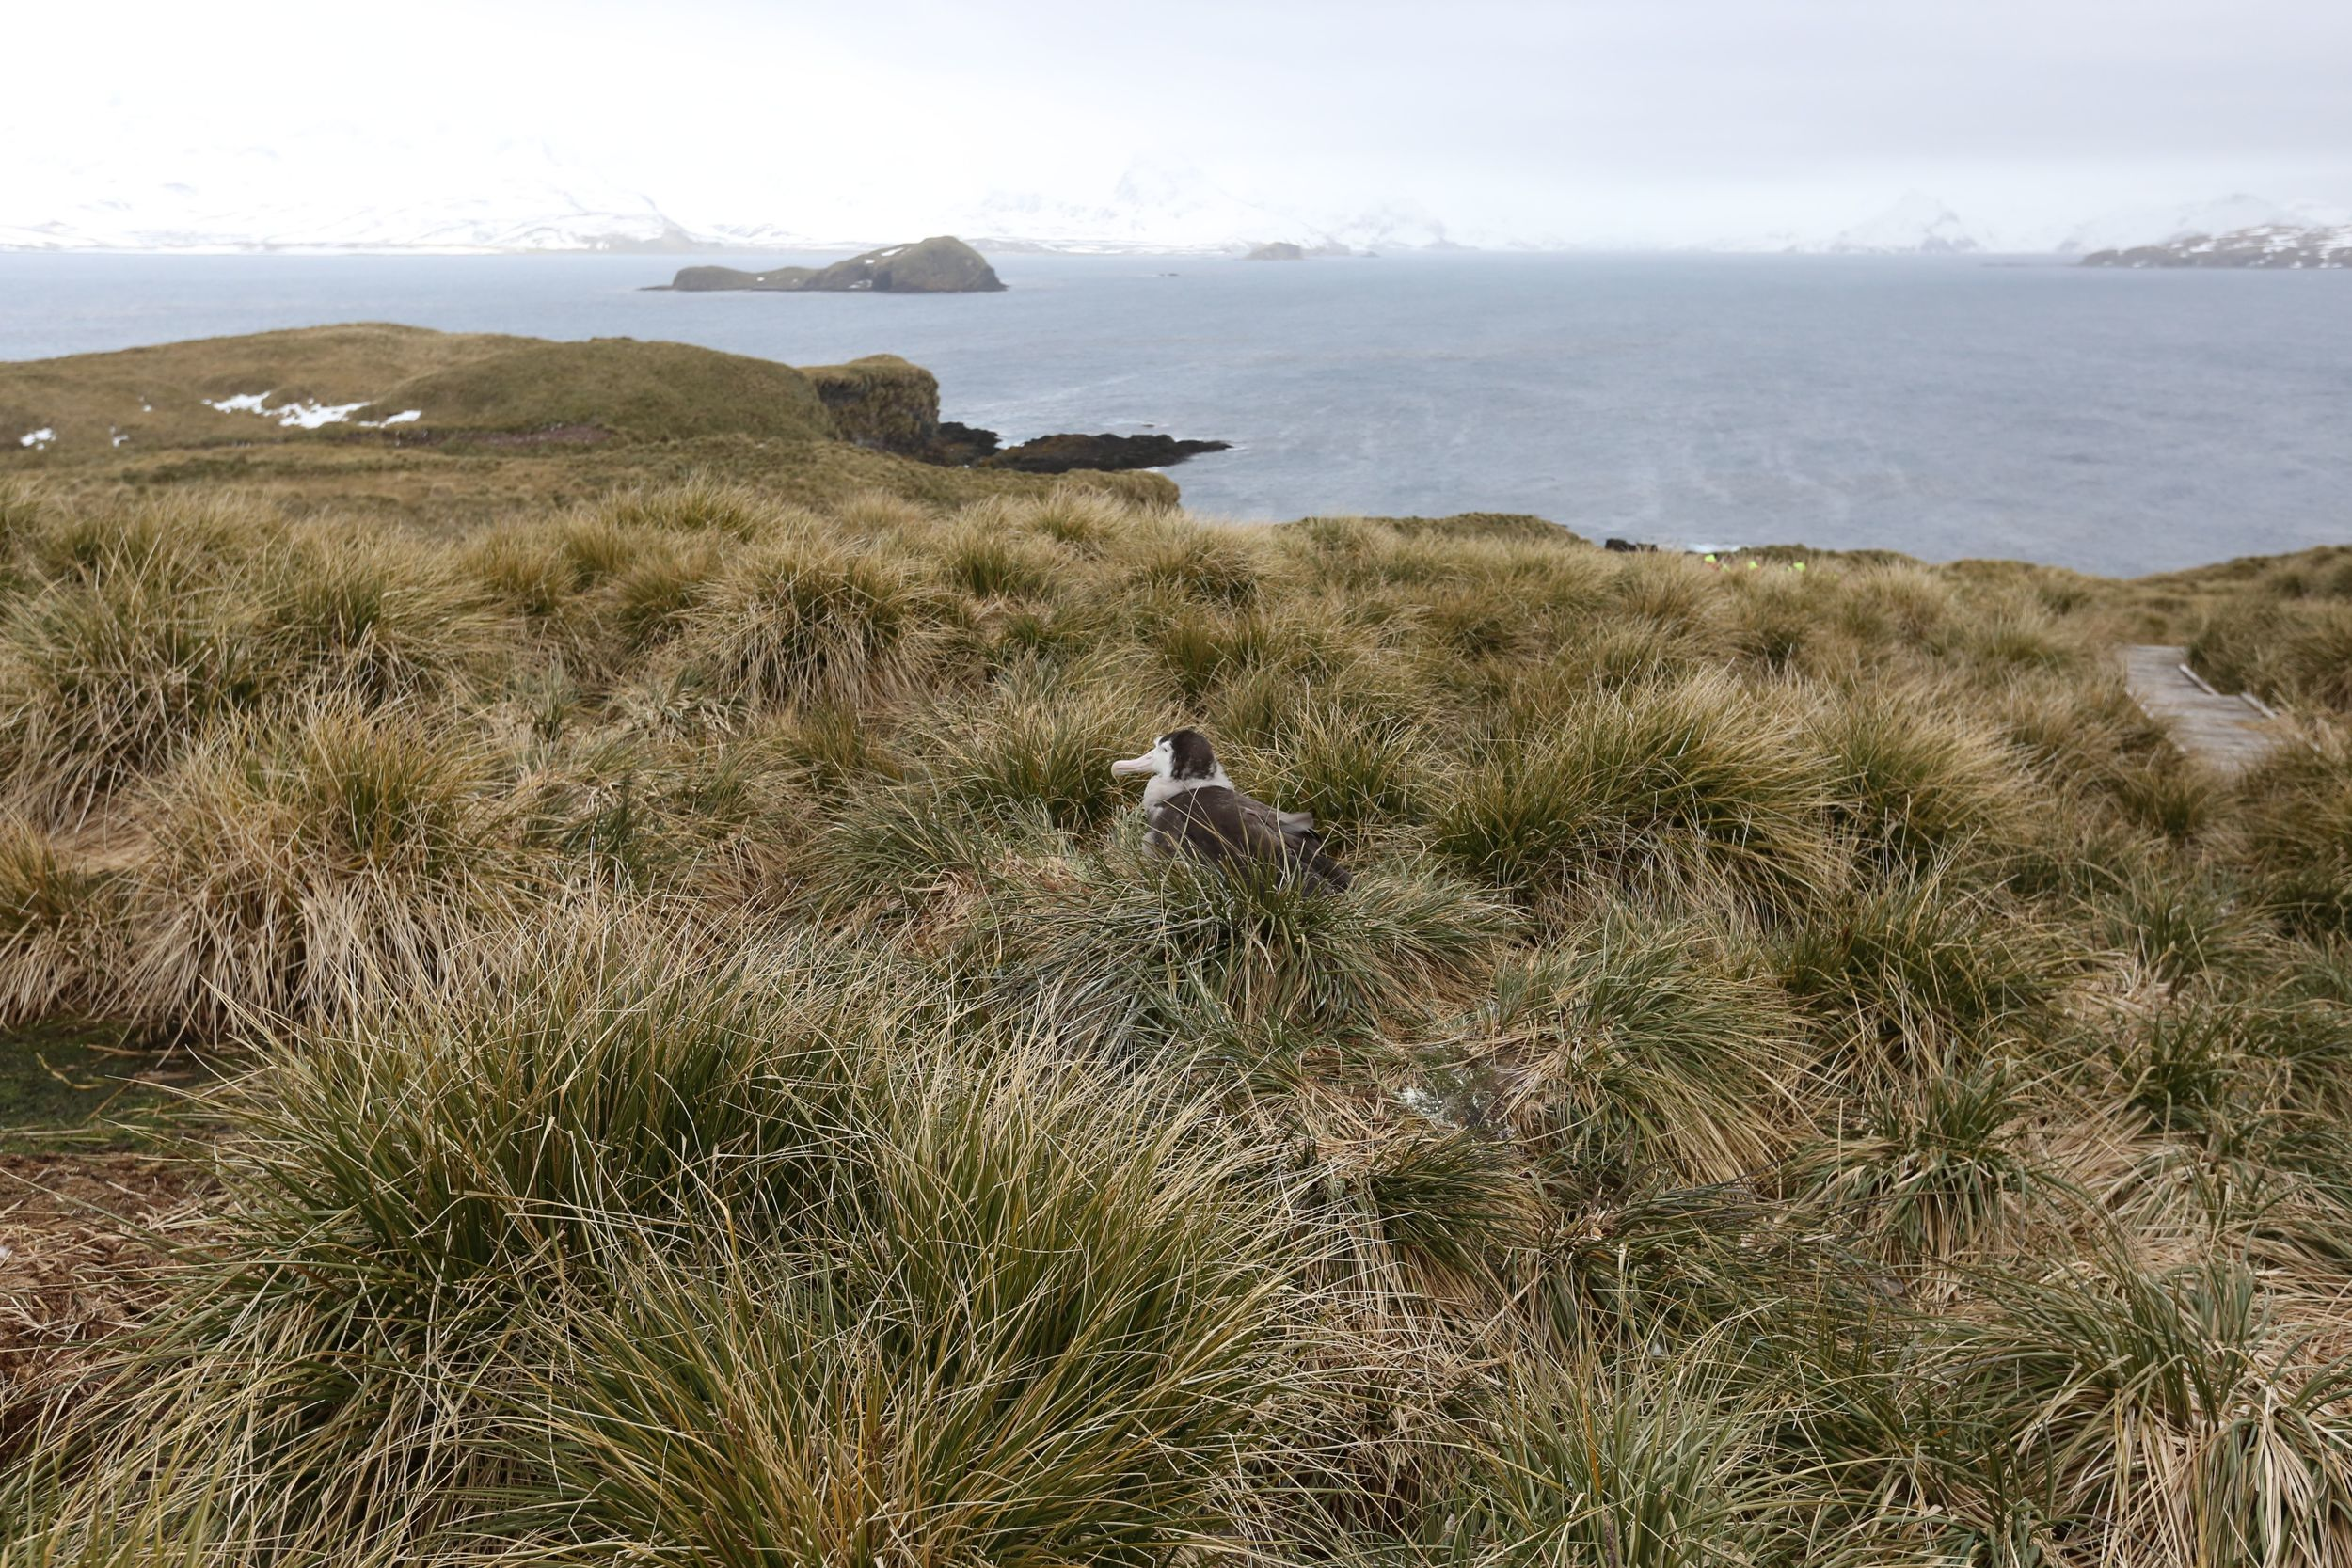 Wandering albatrosses are extraordinary birds. They have the largest wingspan of any avian species (up to 11-and-a-half feet) and can live for 50 years if not done in by getting snagged on baited longline fishing hooks, which kill about 100,000 albatrosses of all kinds each year.